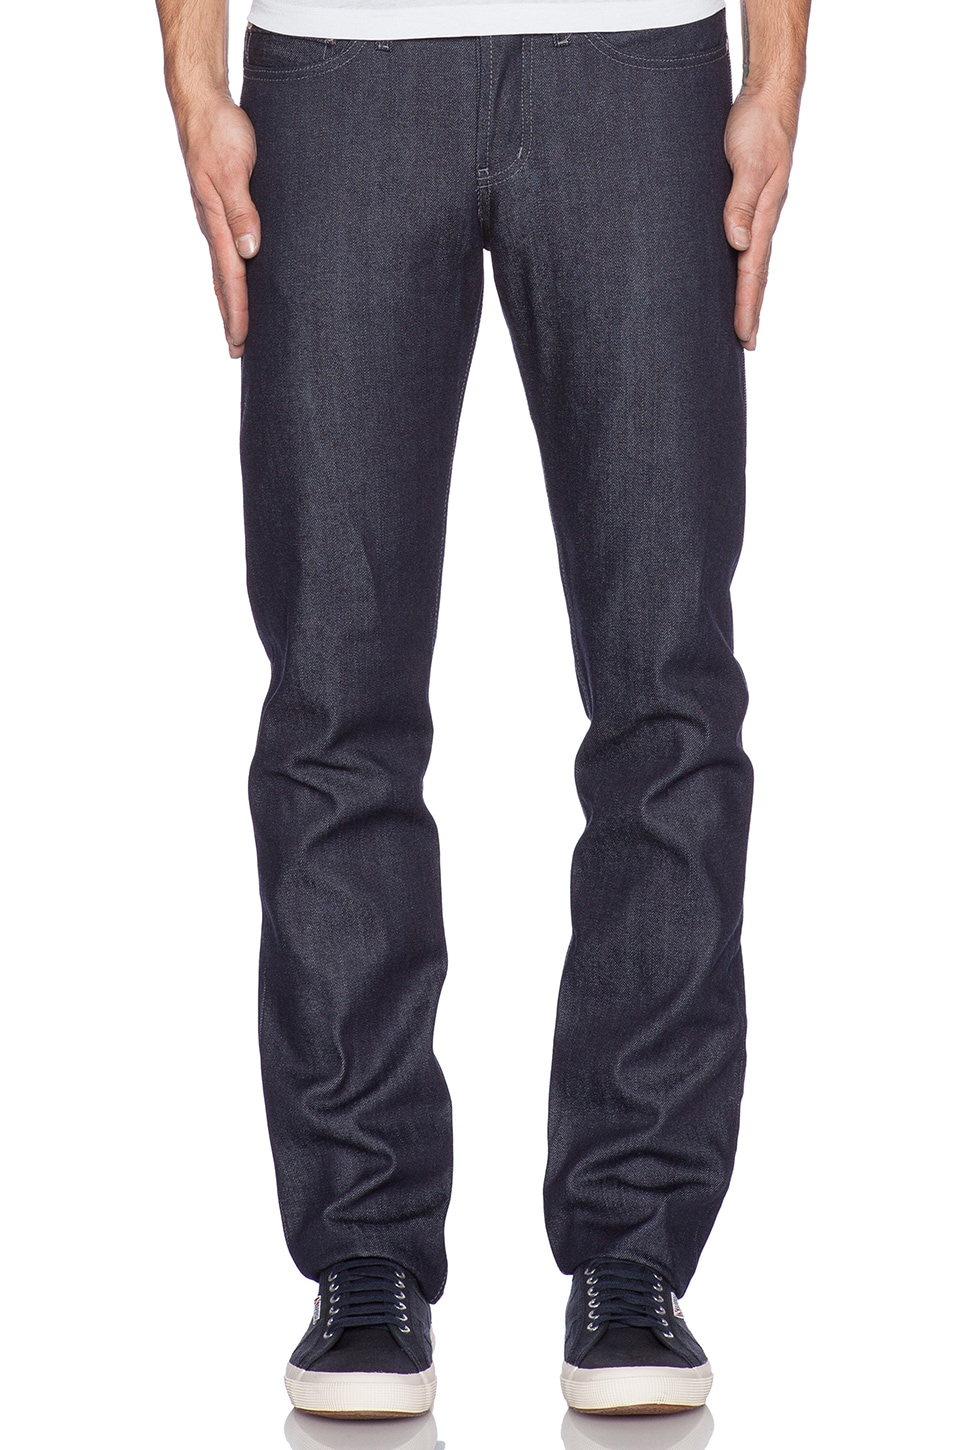 Naked & Famous Denim Weird Guy Core Selvedge 14oz. in Indigo to Red